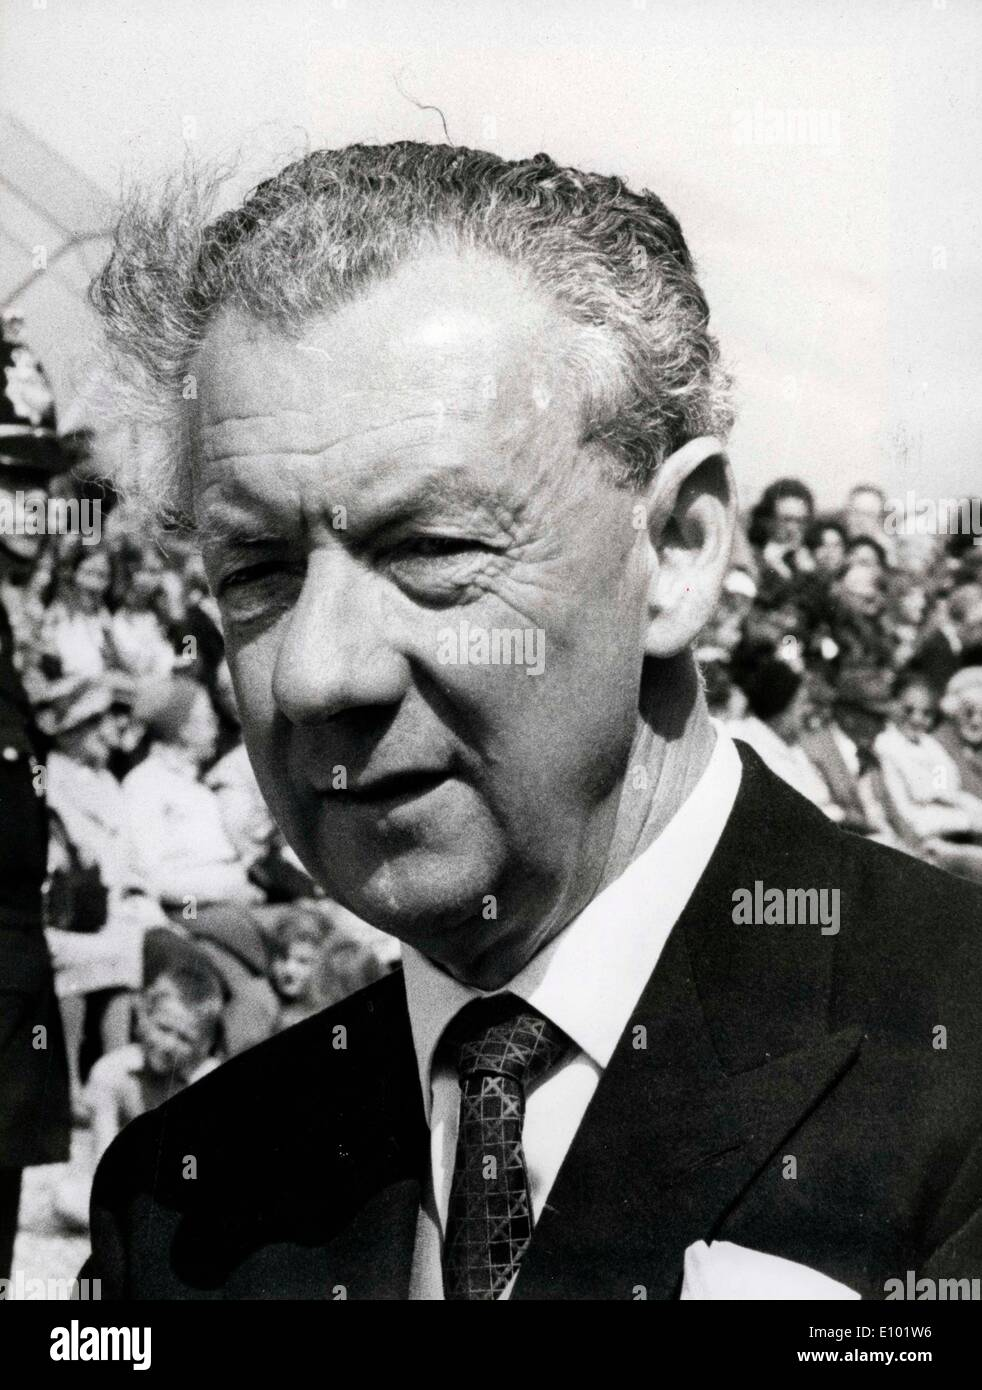 English composer, conductor and pianist, BENJAMIN BRITTEN Edward Benjamin Britten, Baron Britten of Aldeburgh - Stock Image